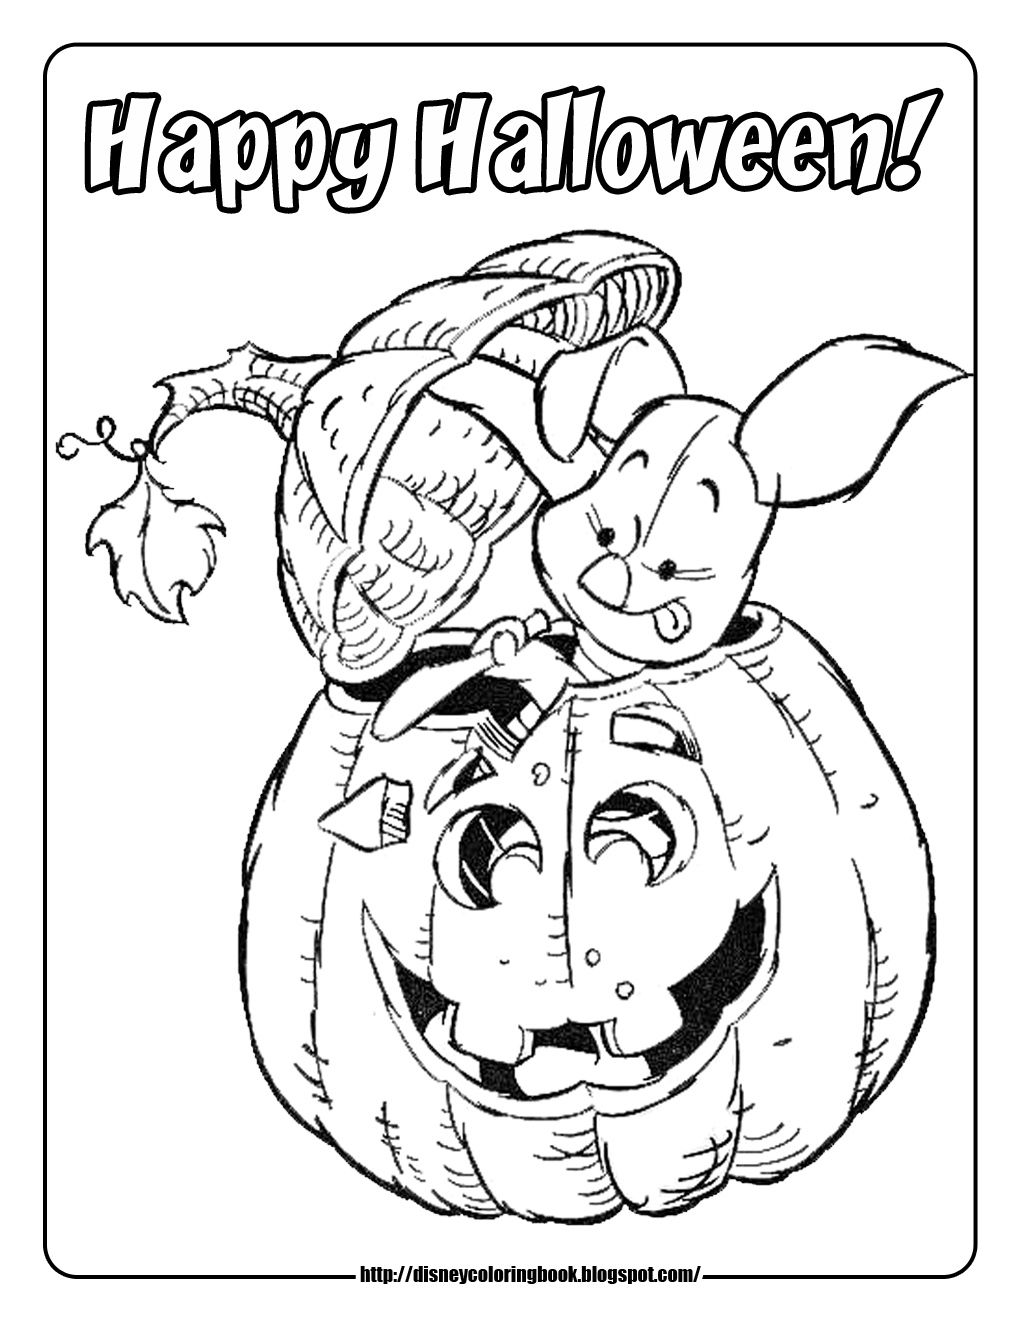 Halloween Coloring Pages Piglet Carving Pumpkin Jpg 1 020 1 320 Pixels Pumpkin Coloring Pages Halloween Coloring Pages Halloween Coloring Book